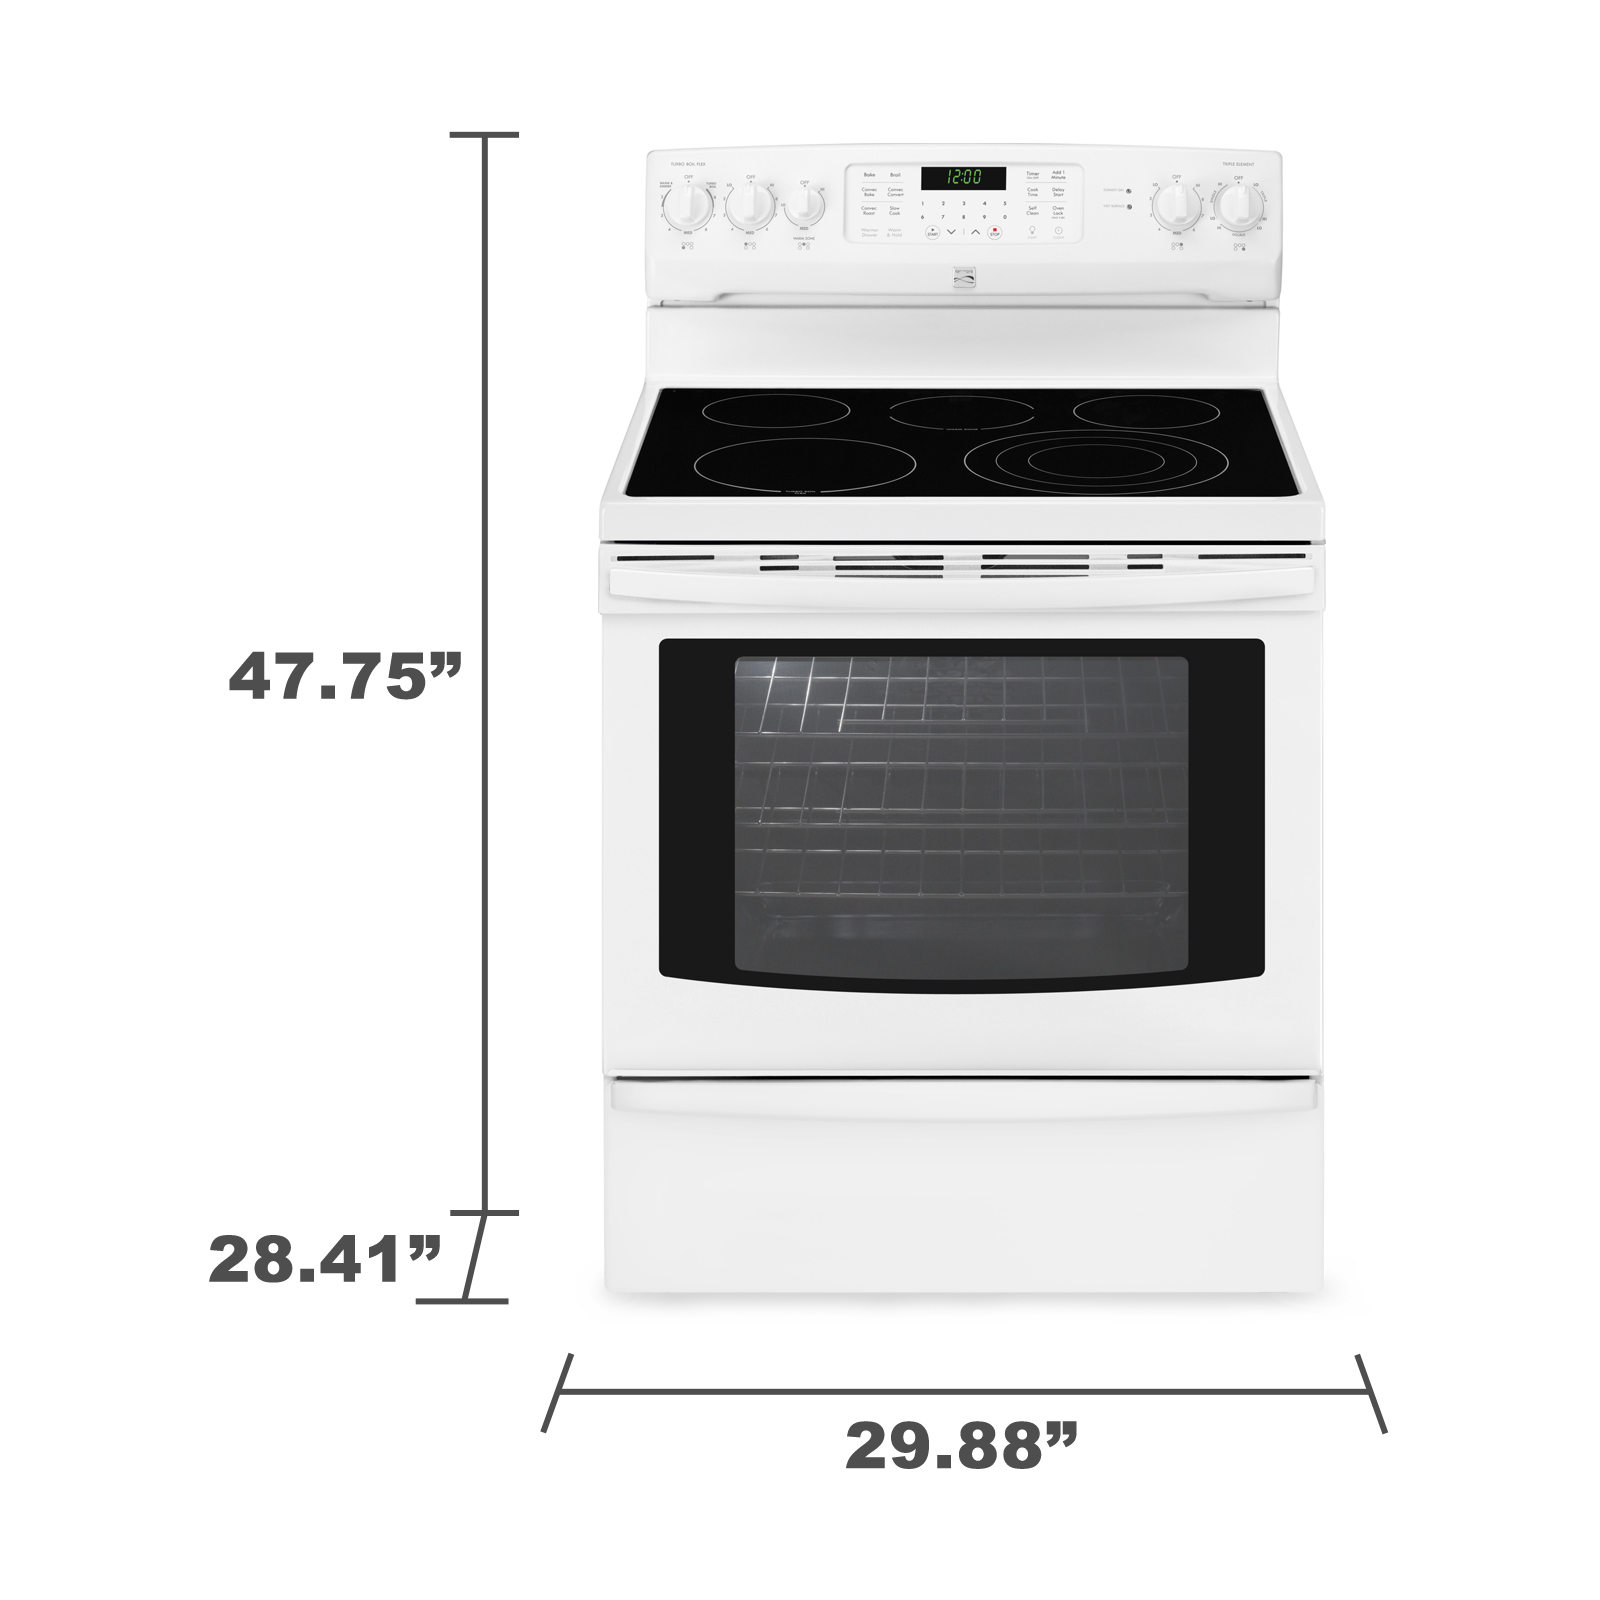 Kenmore 94242 5.8 cu. ft. Electric Range w/ True Convection - White